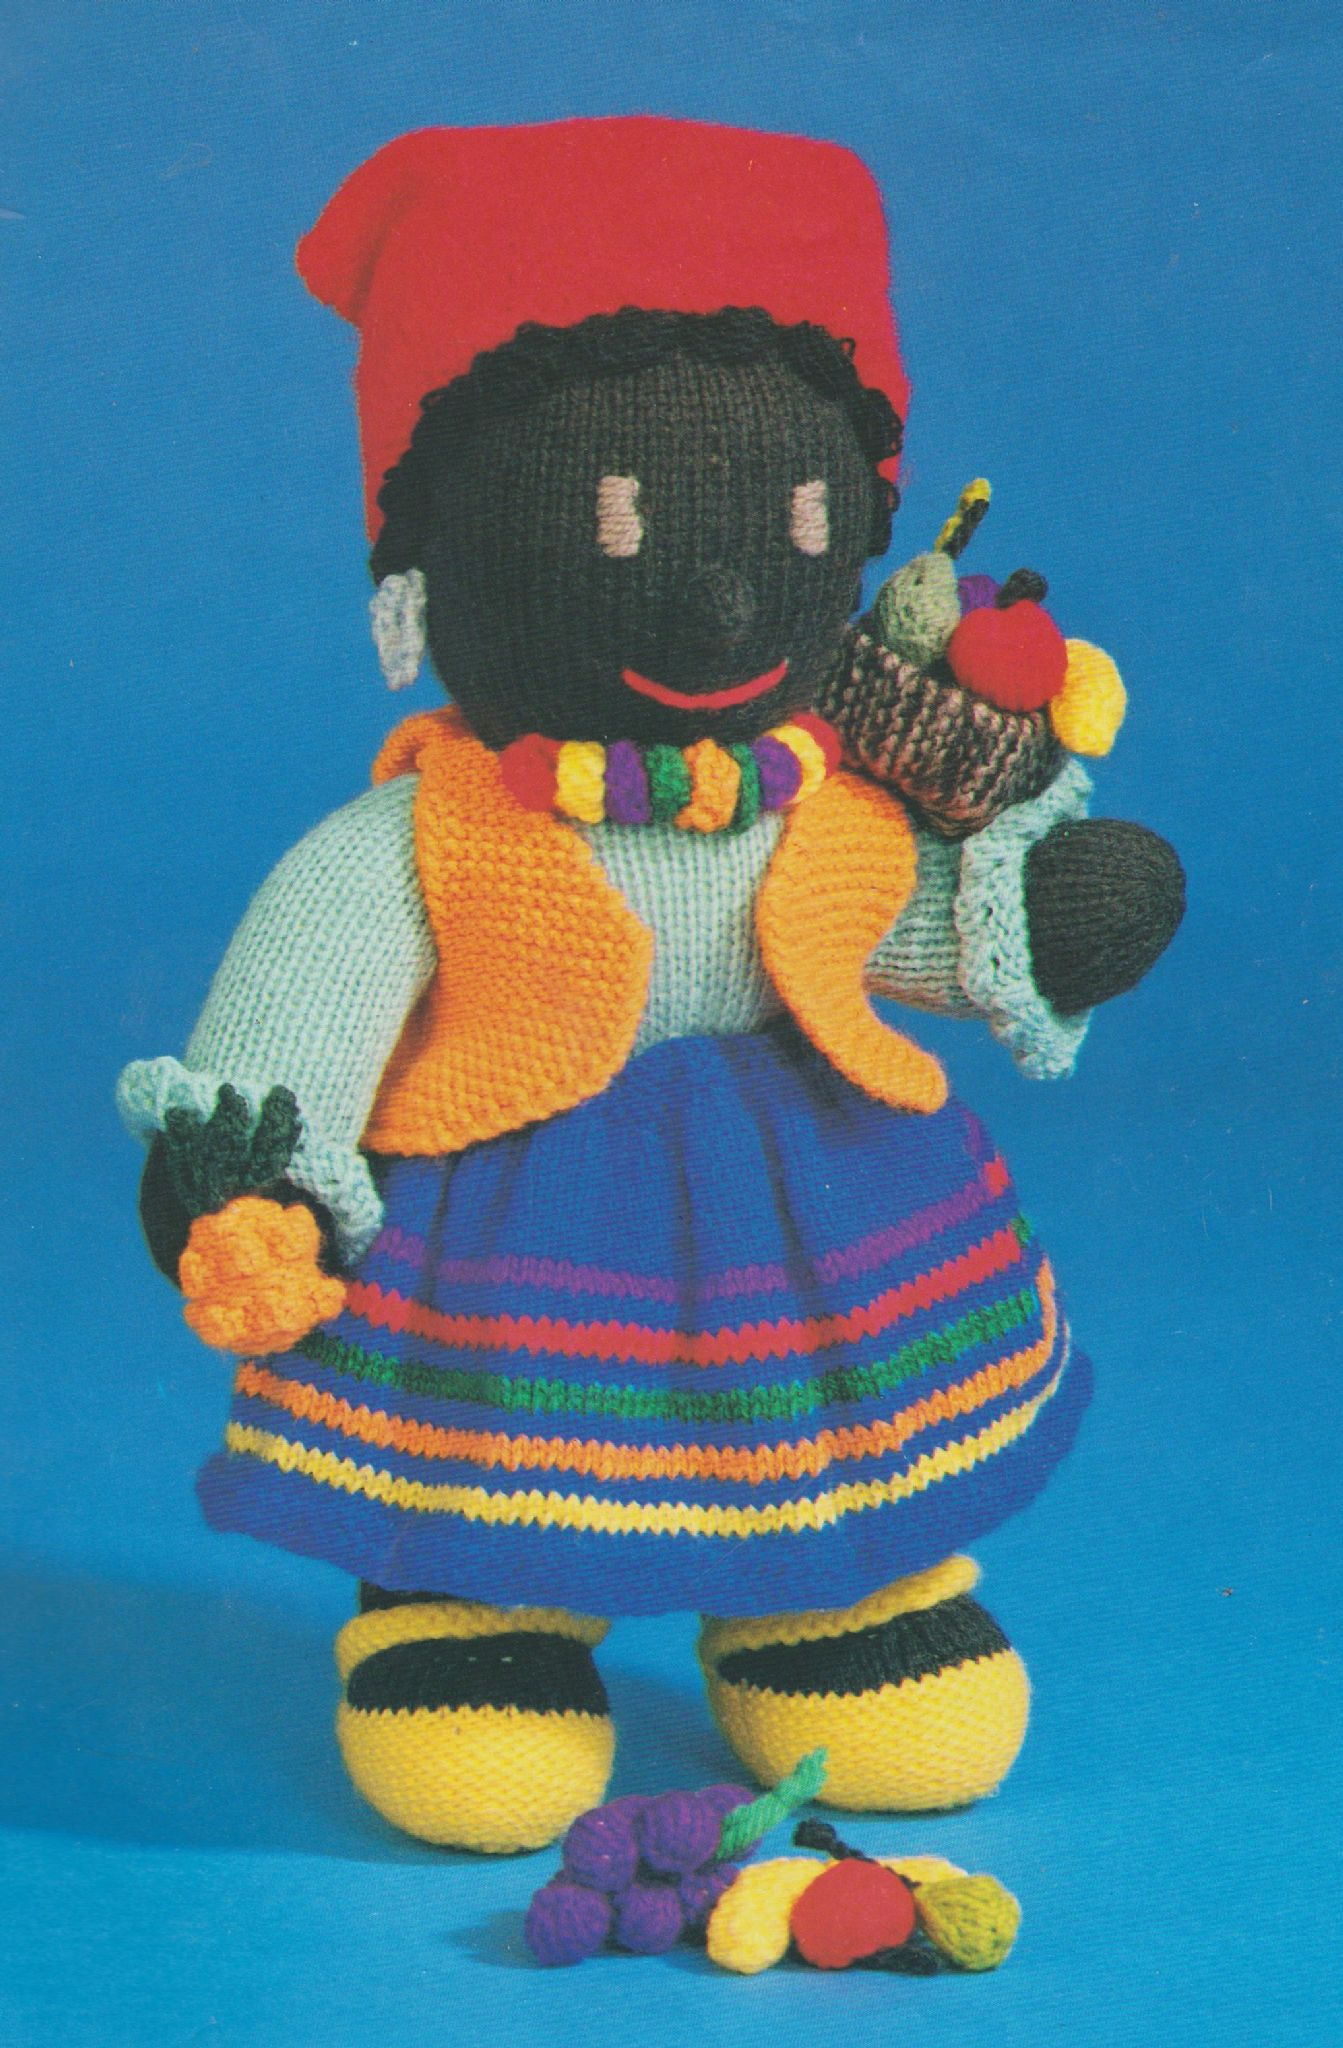 Knitting Patterns For Toys Uk Pdf Digital Vintage Knitting Pattern Stuffed Soft Body Doll Toy Jamaican Girl 30 Cm Double Knittin